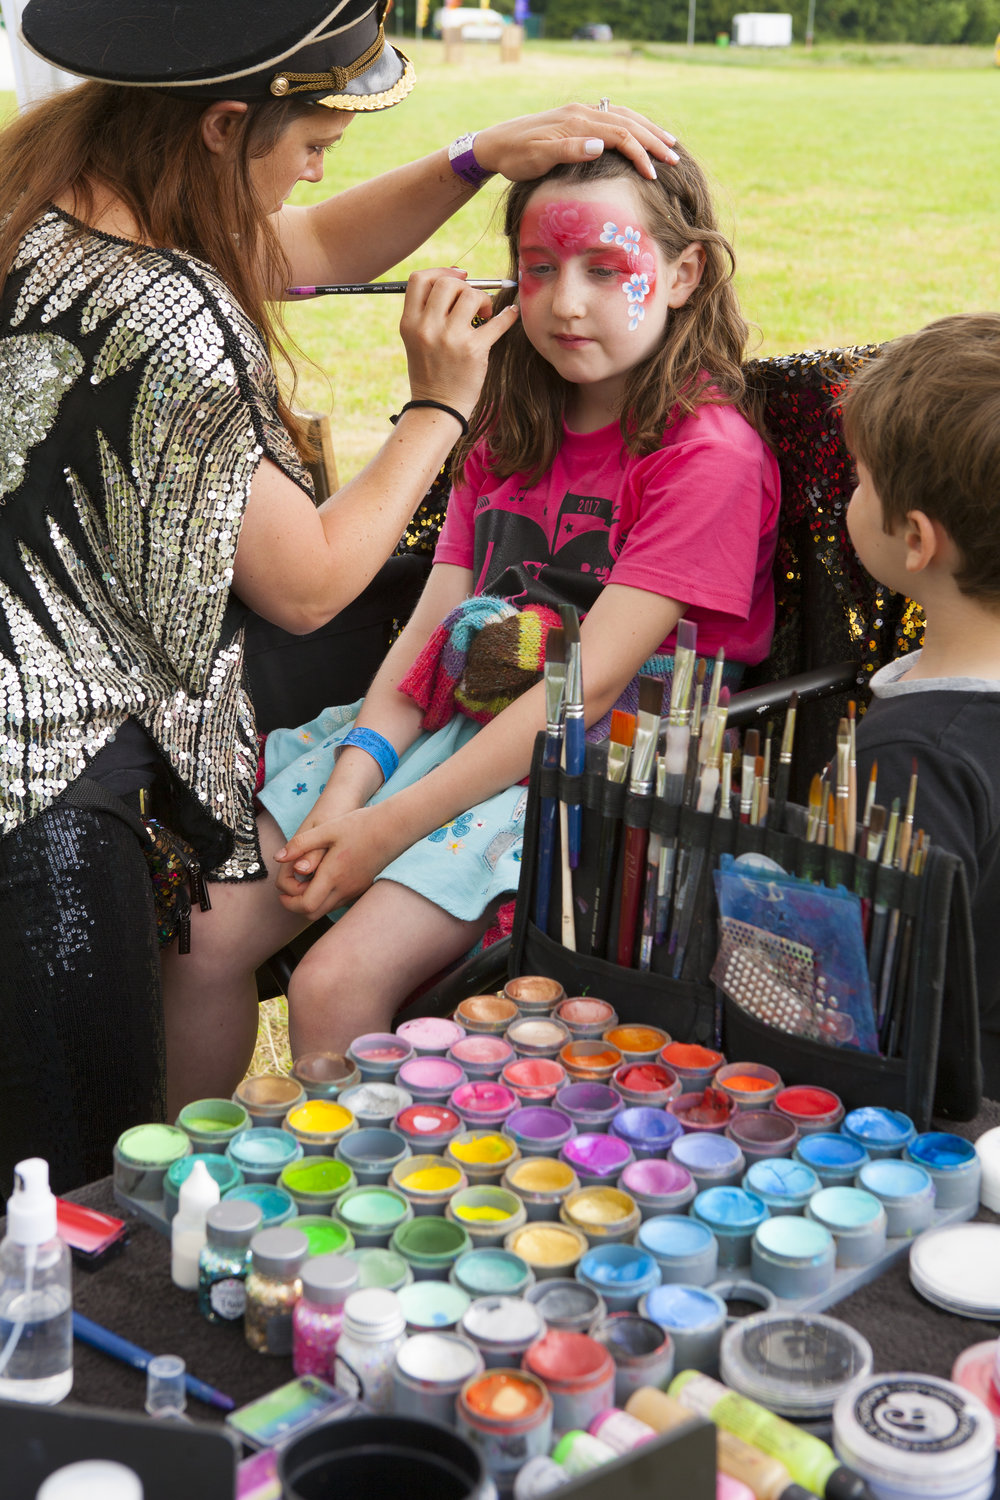 _MG_8156 FACE PAINT.jpg